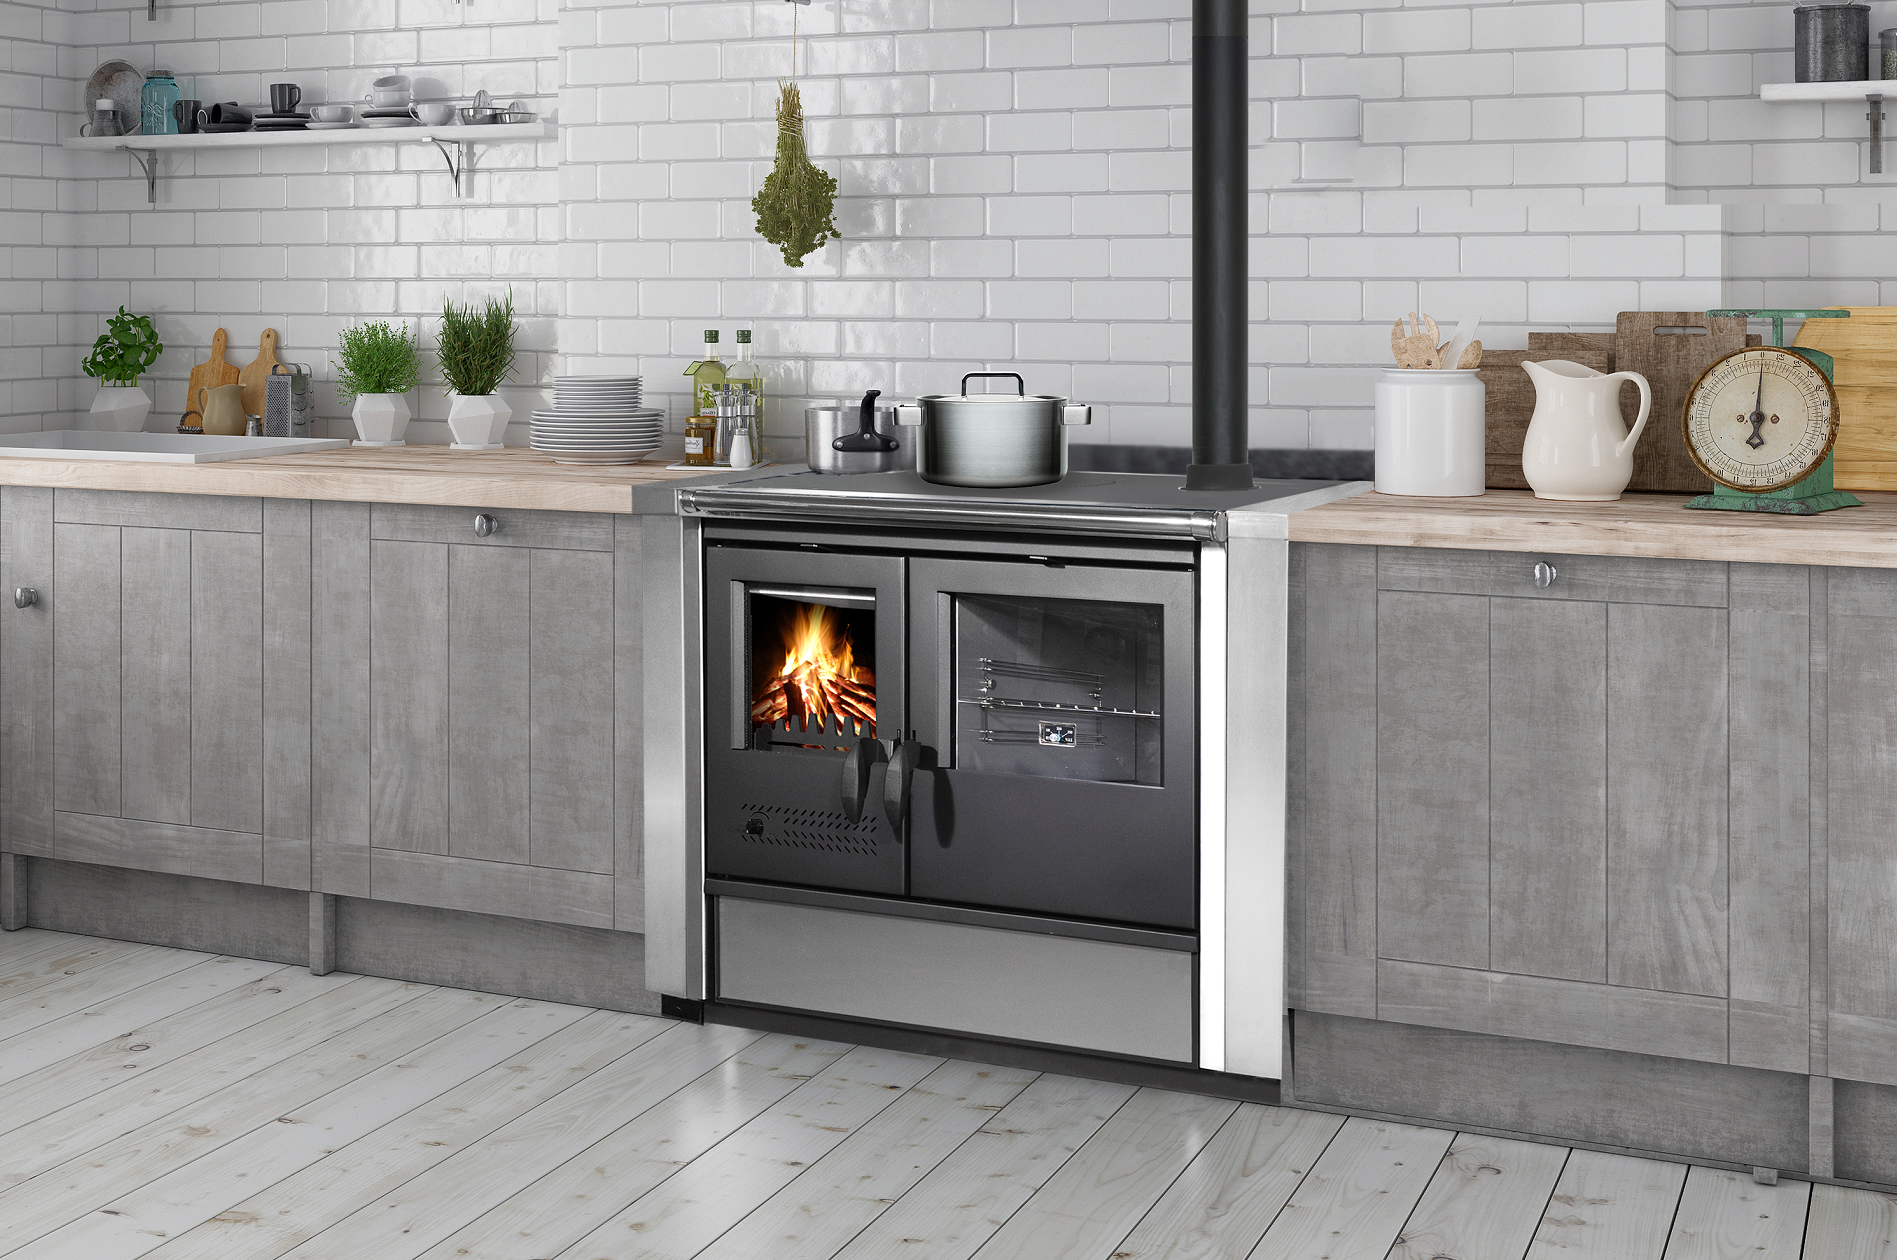 Wood stoves and cookers in hydro version